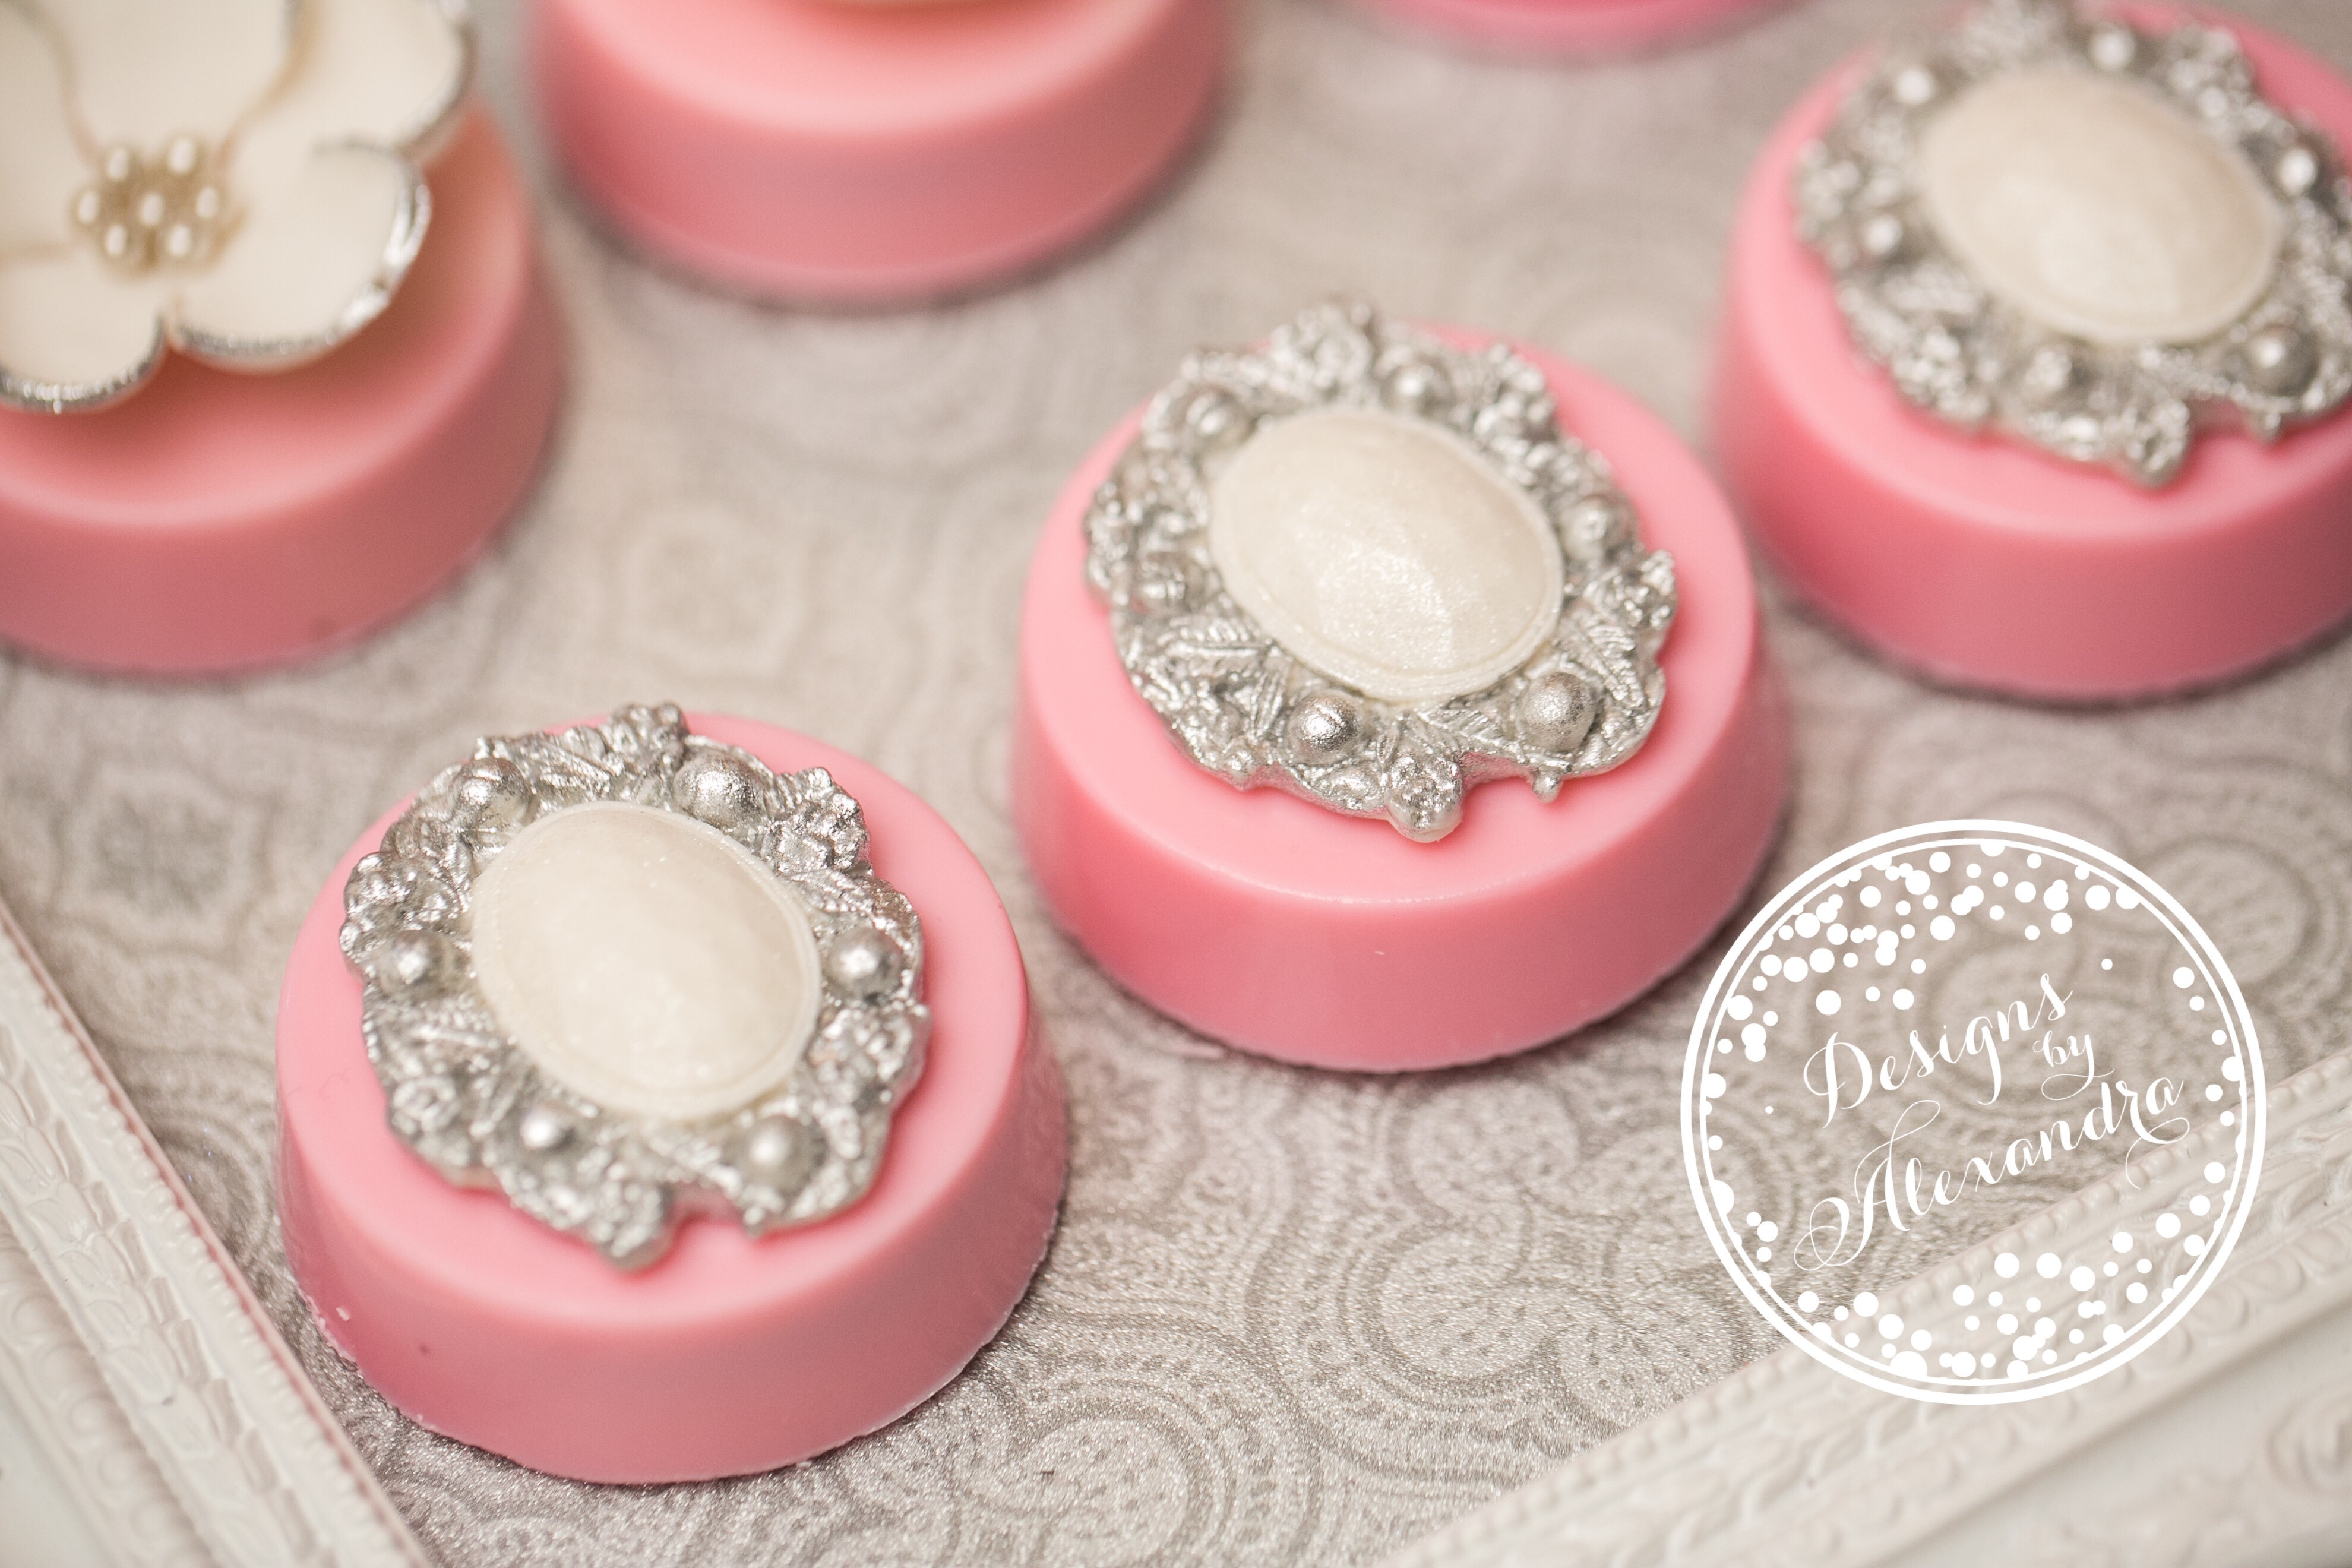 Pink and silver Victorian petite fours